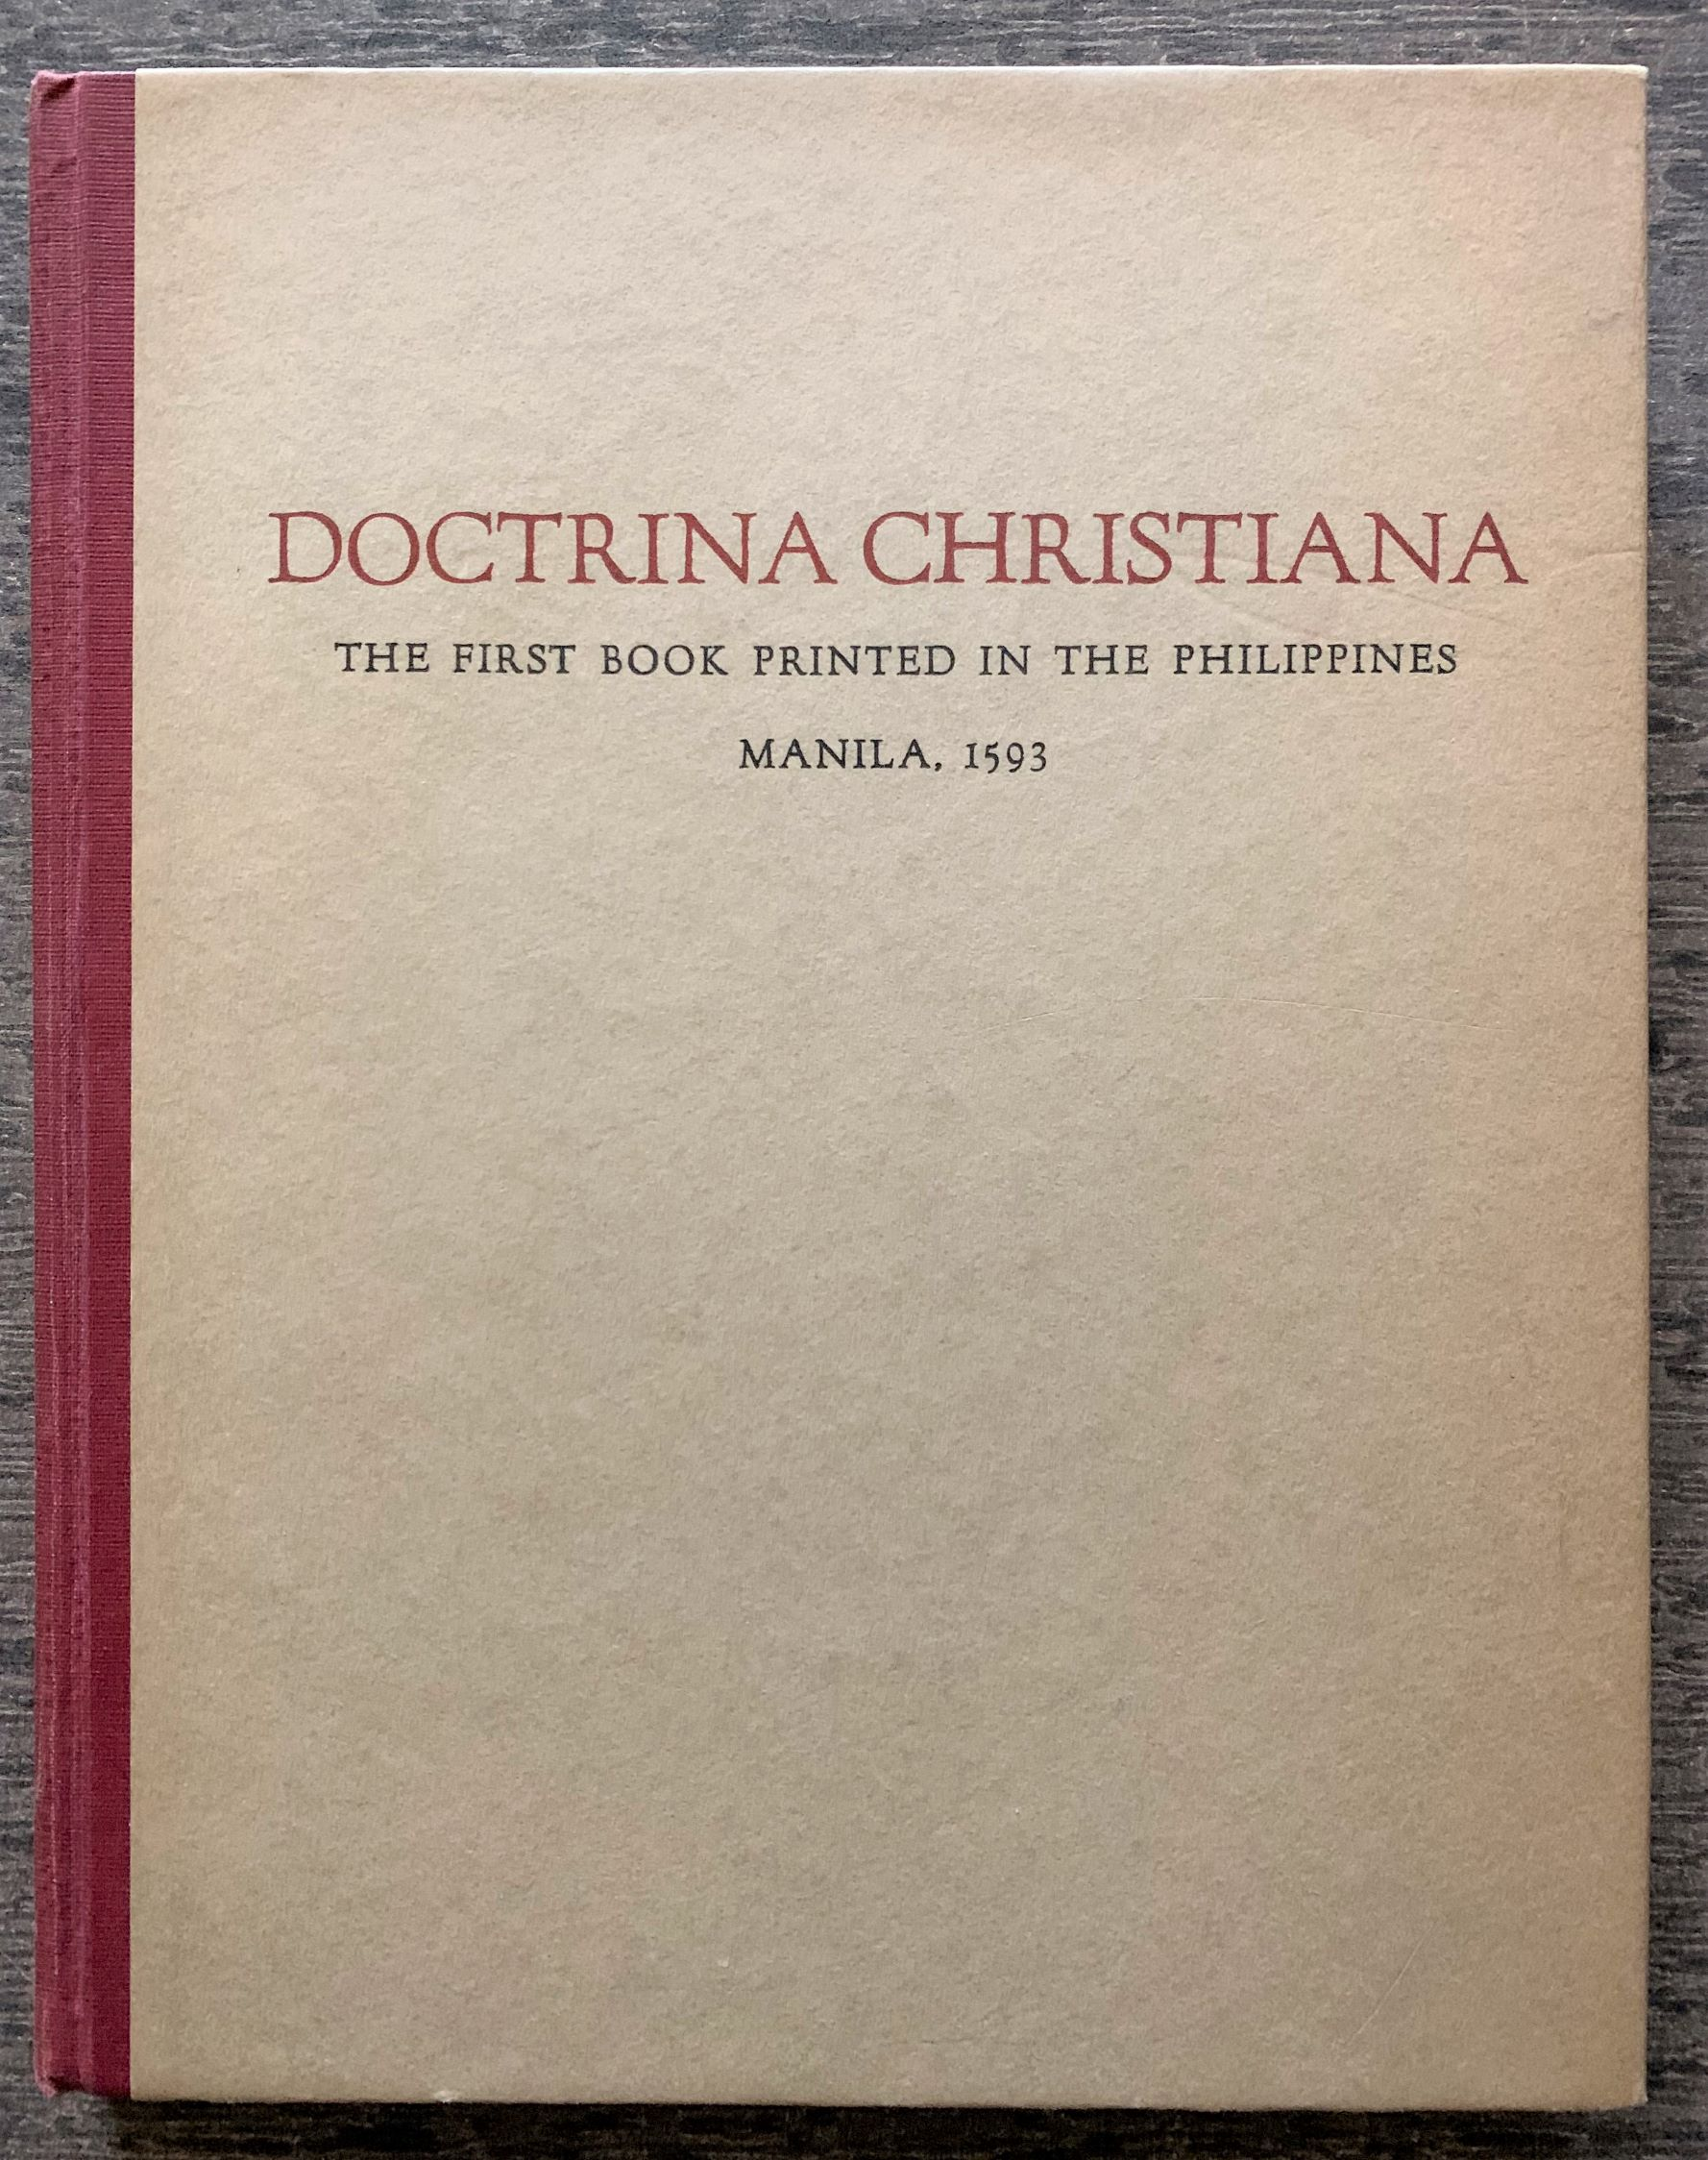 Image for Doctrina Christiana, The First Book Printed in the Philippines, Manila, 1593, A Facsimile of the Copy in the Lessing J. Rosenwald Collection, Library of Congress, Washington. [Inscribed by Lessing Rosenwald to Dr. Erwin Rosenthal].